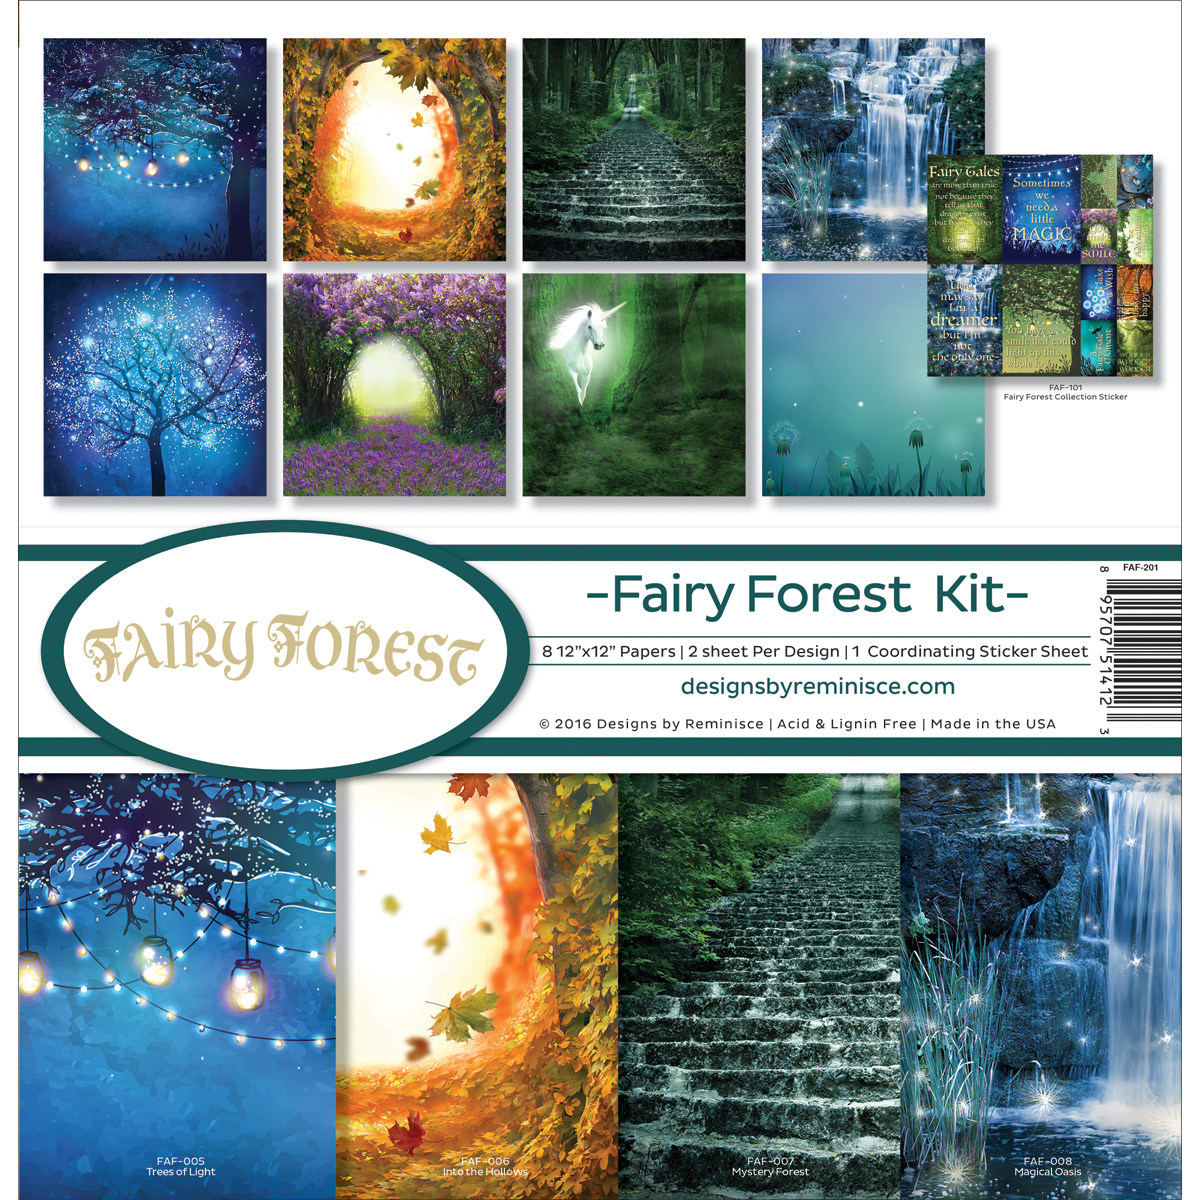 Reminisce Collection Kit 12'x12' - Fairy Forest W/Fireflies & Unicorn